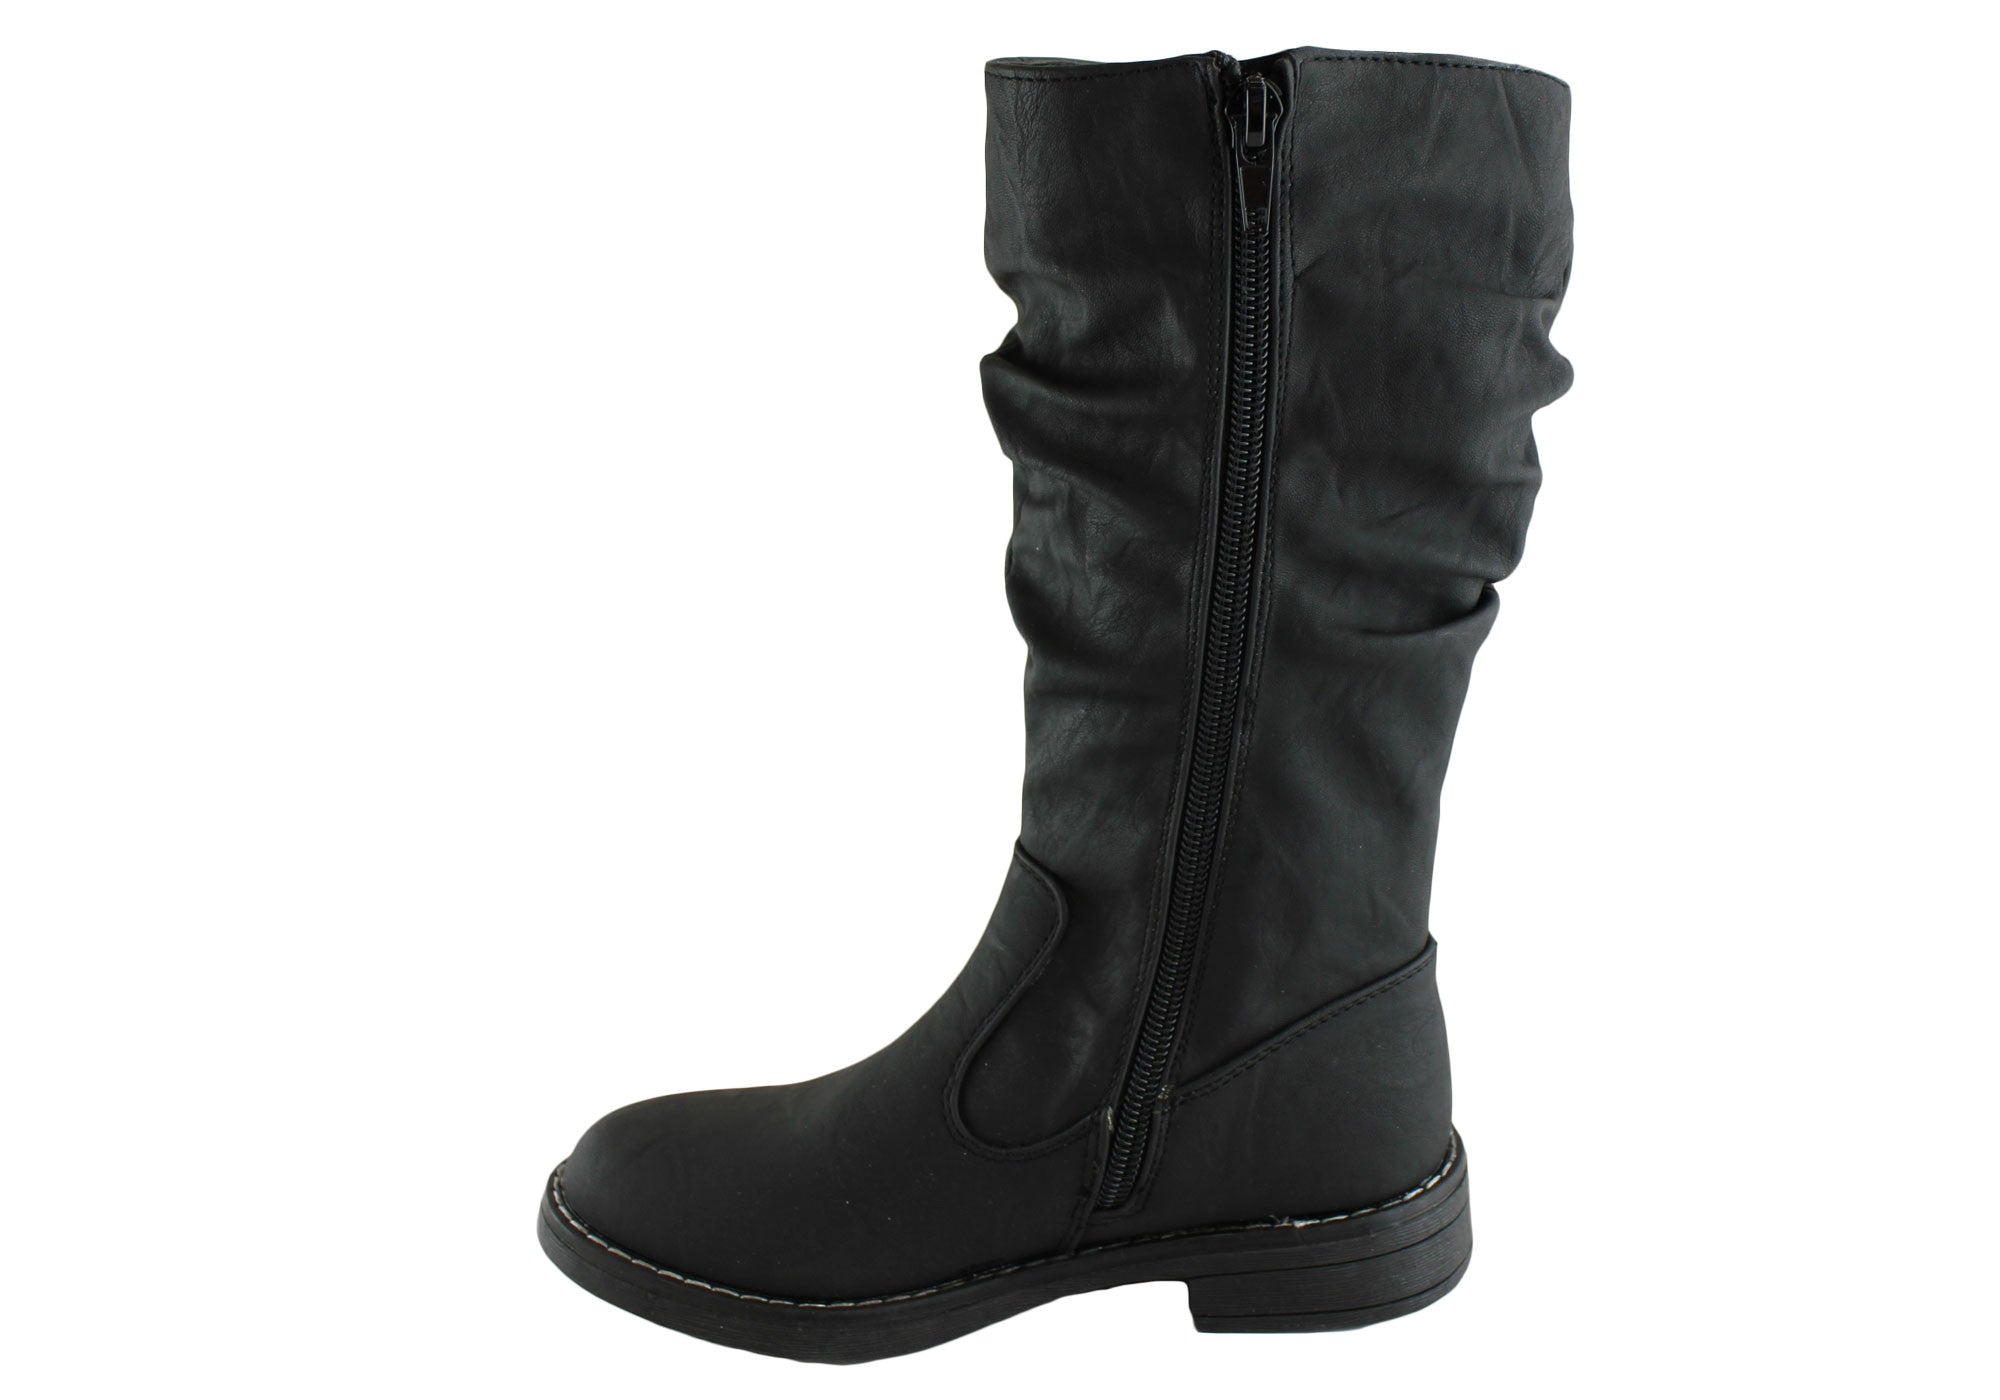 Grosby Roxy Kids Fashion Boots